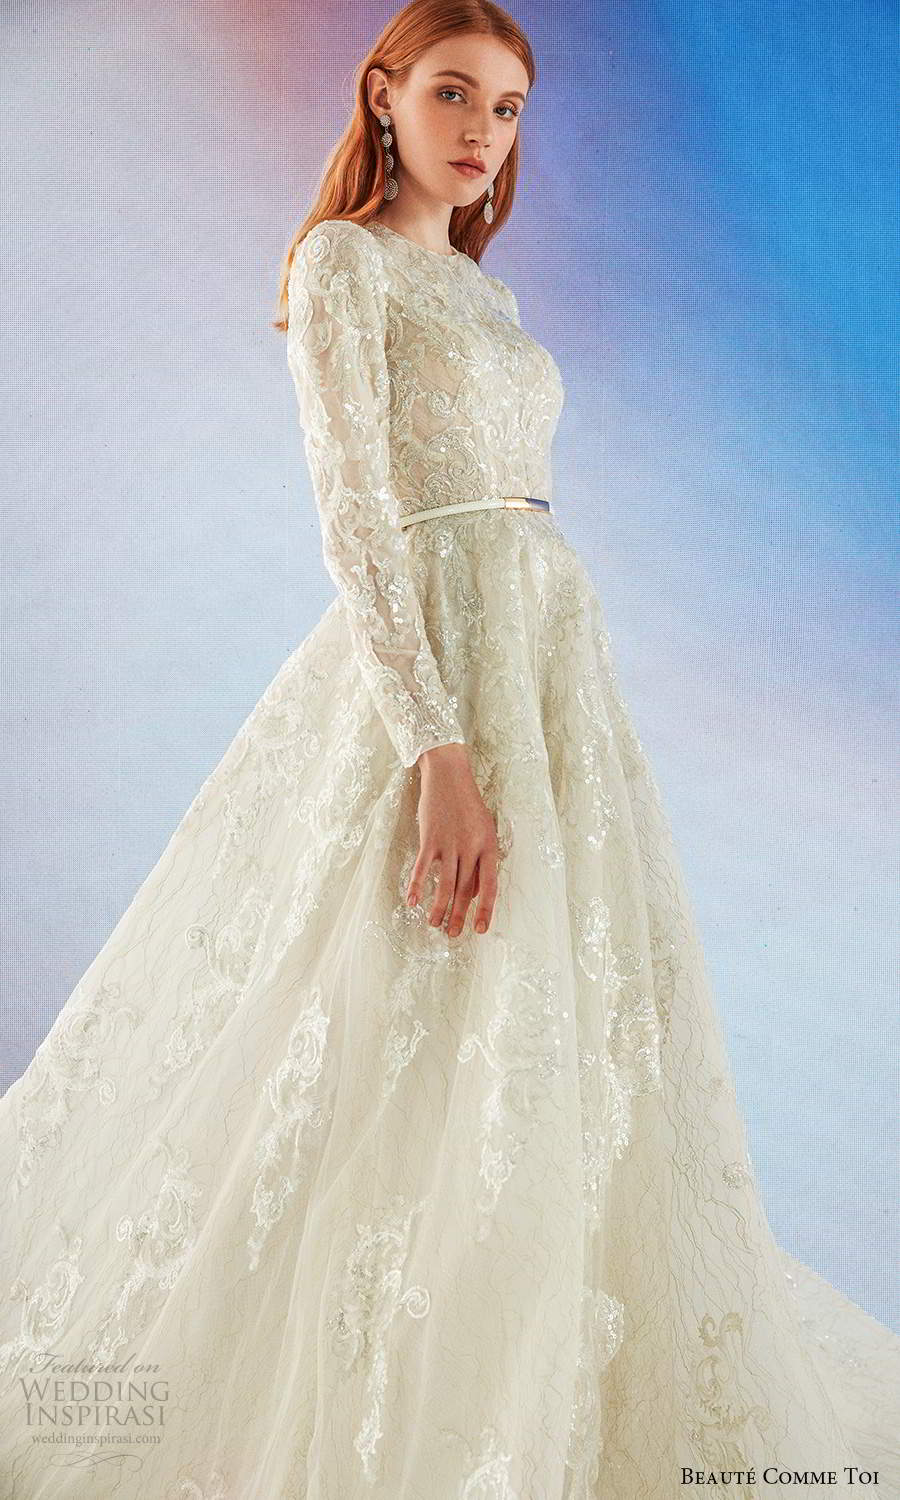 beaute comme toi fall 2021 bridal long sleeves jewel neckline fully embellished a line ball gown wedding dress chapel train (3) mv